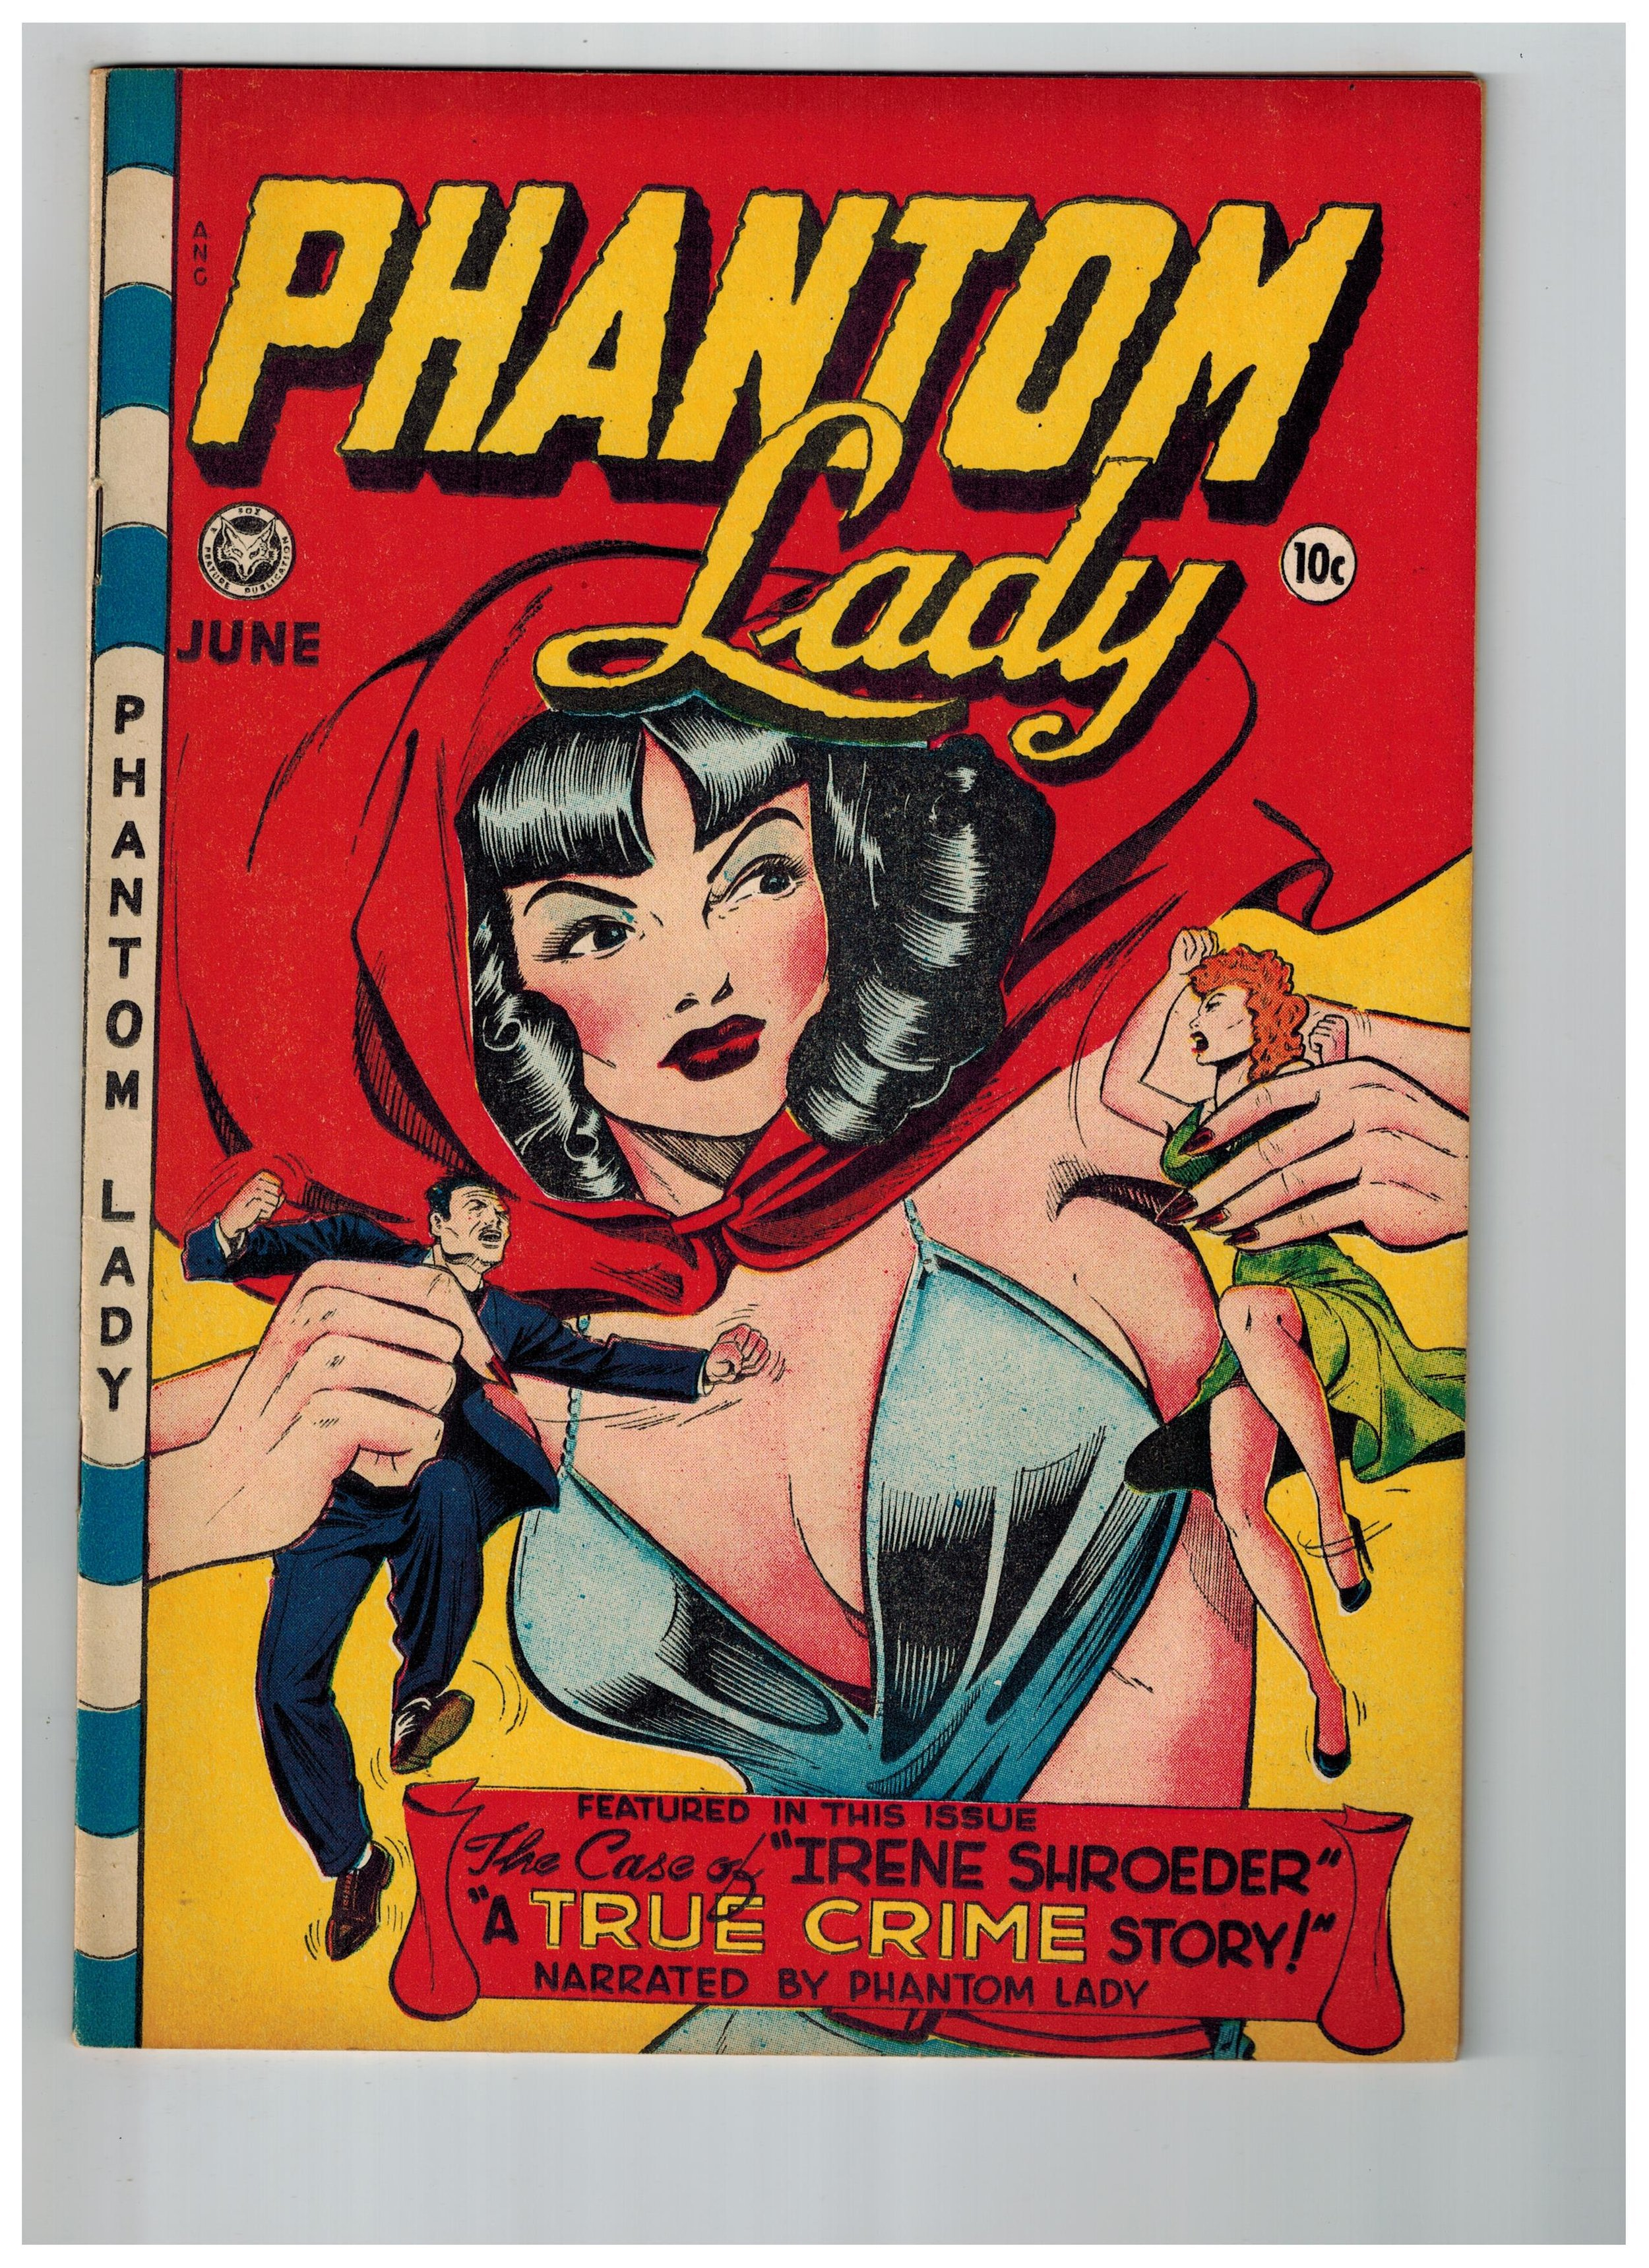 Phantom Lady 18 (1).jpg